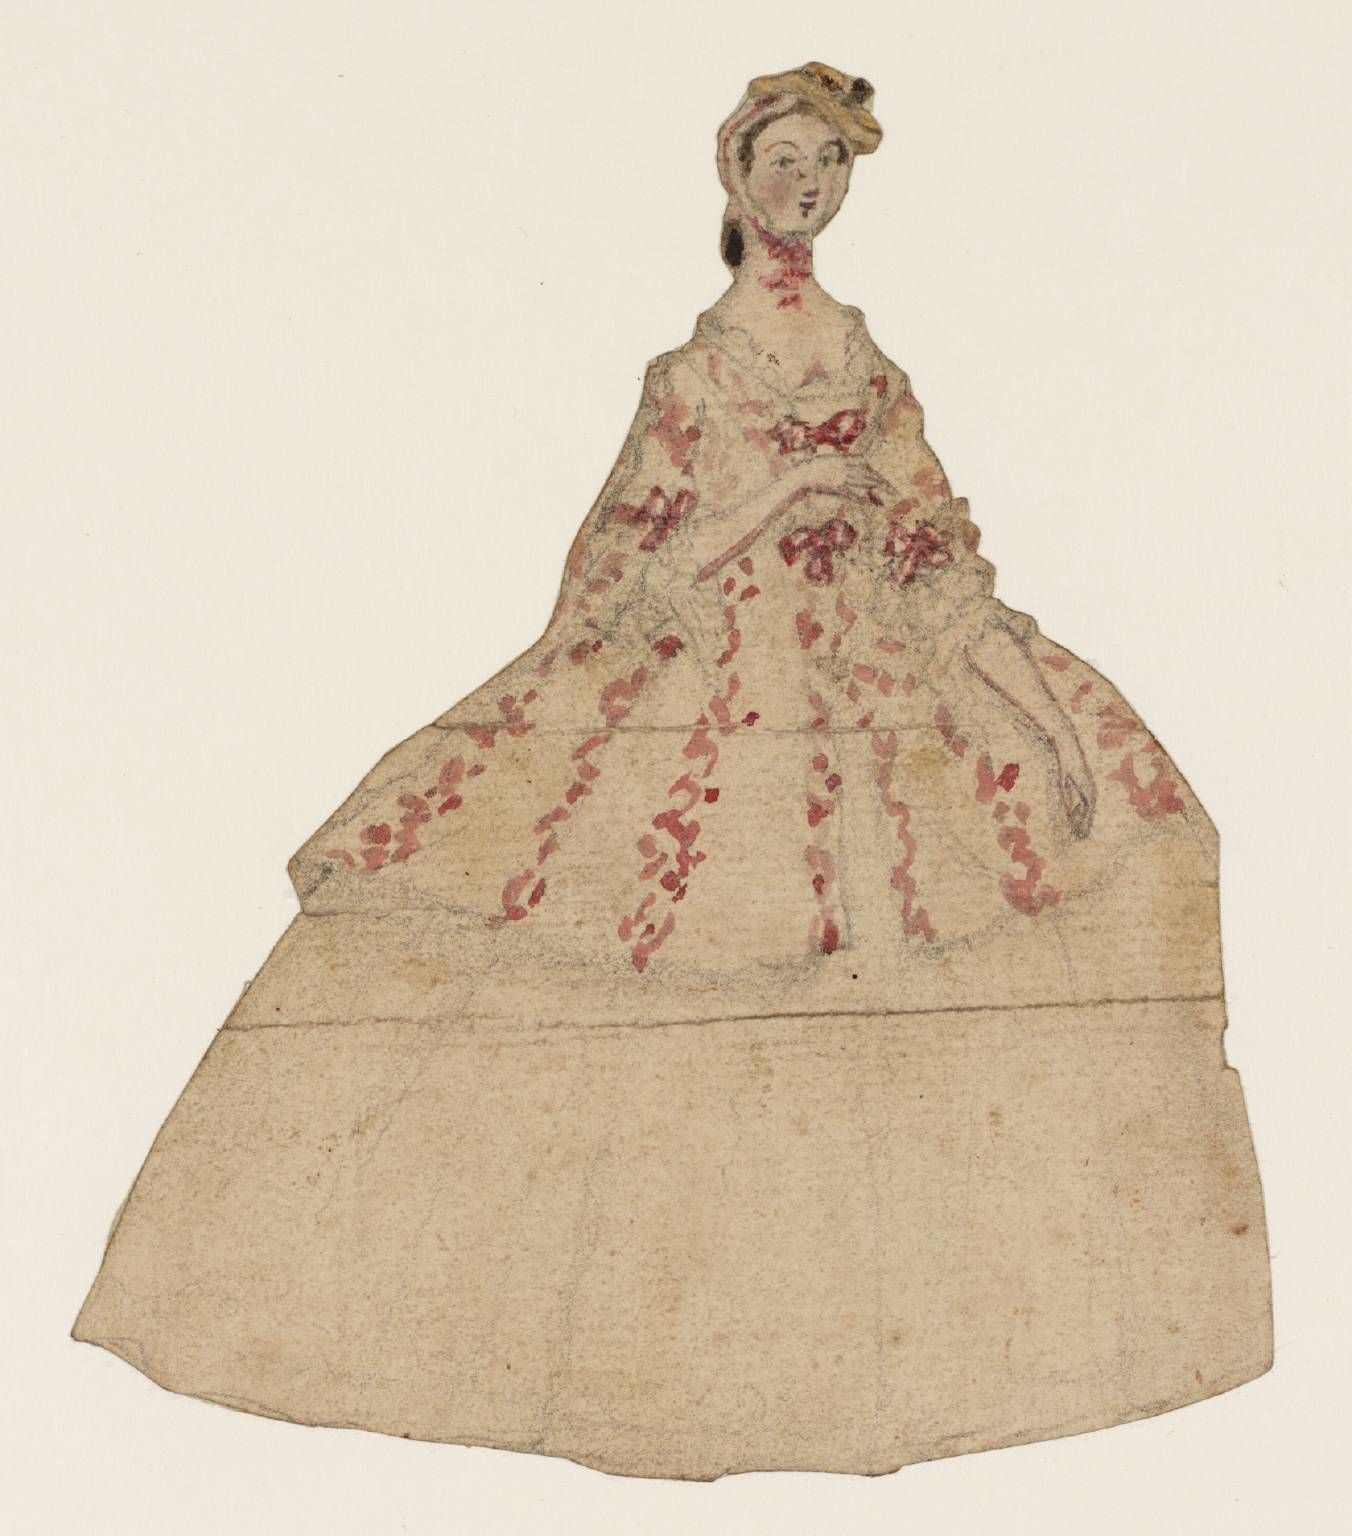 Pink dress illustration  Susanna Duncombe née Susanna Highmore uCutout of a Lady in a